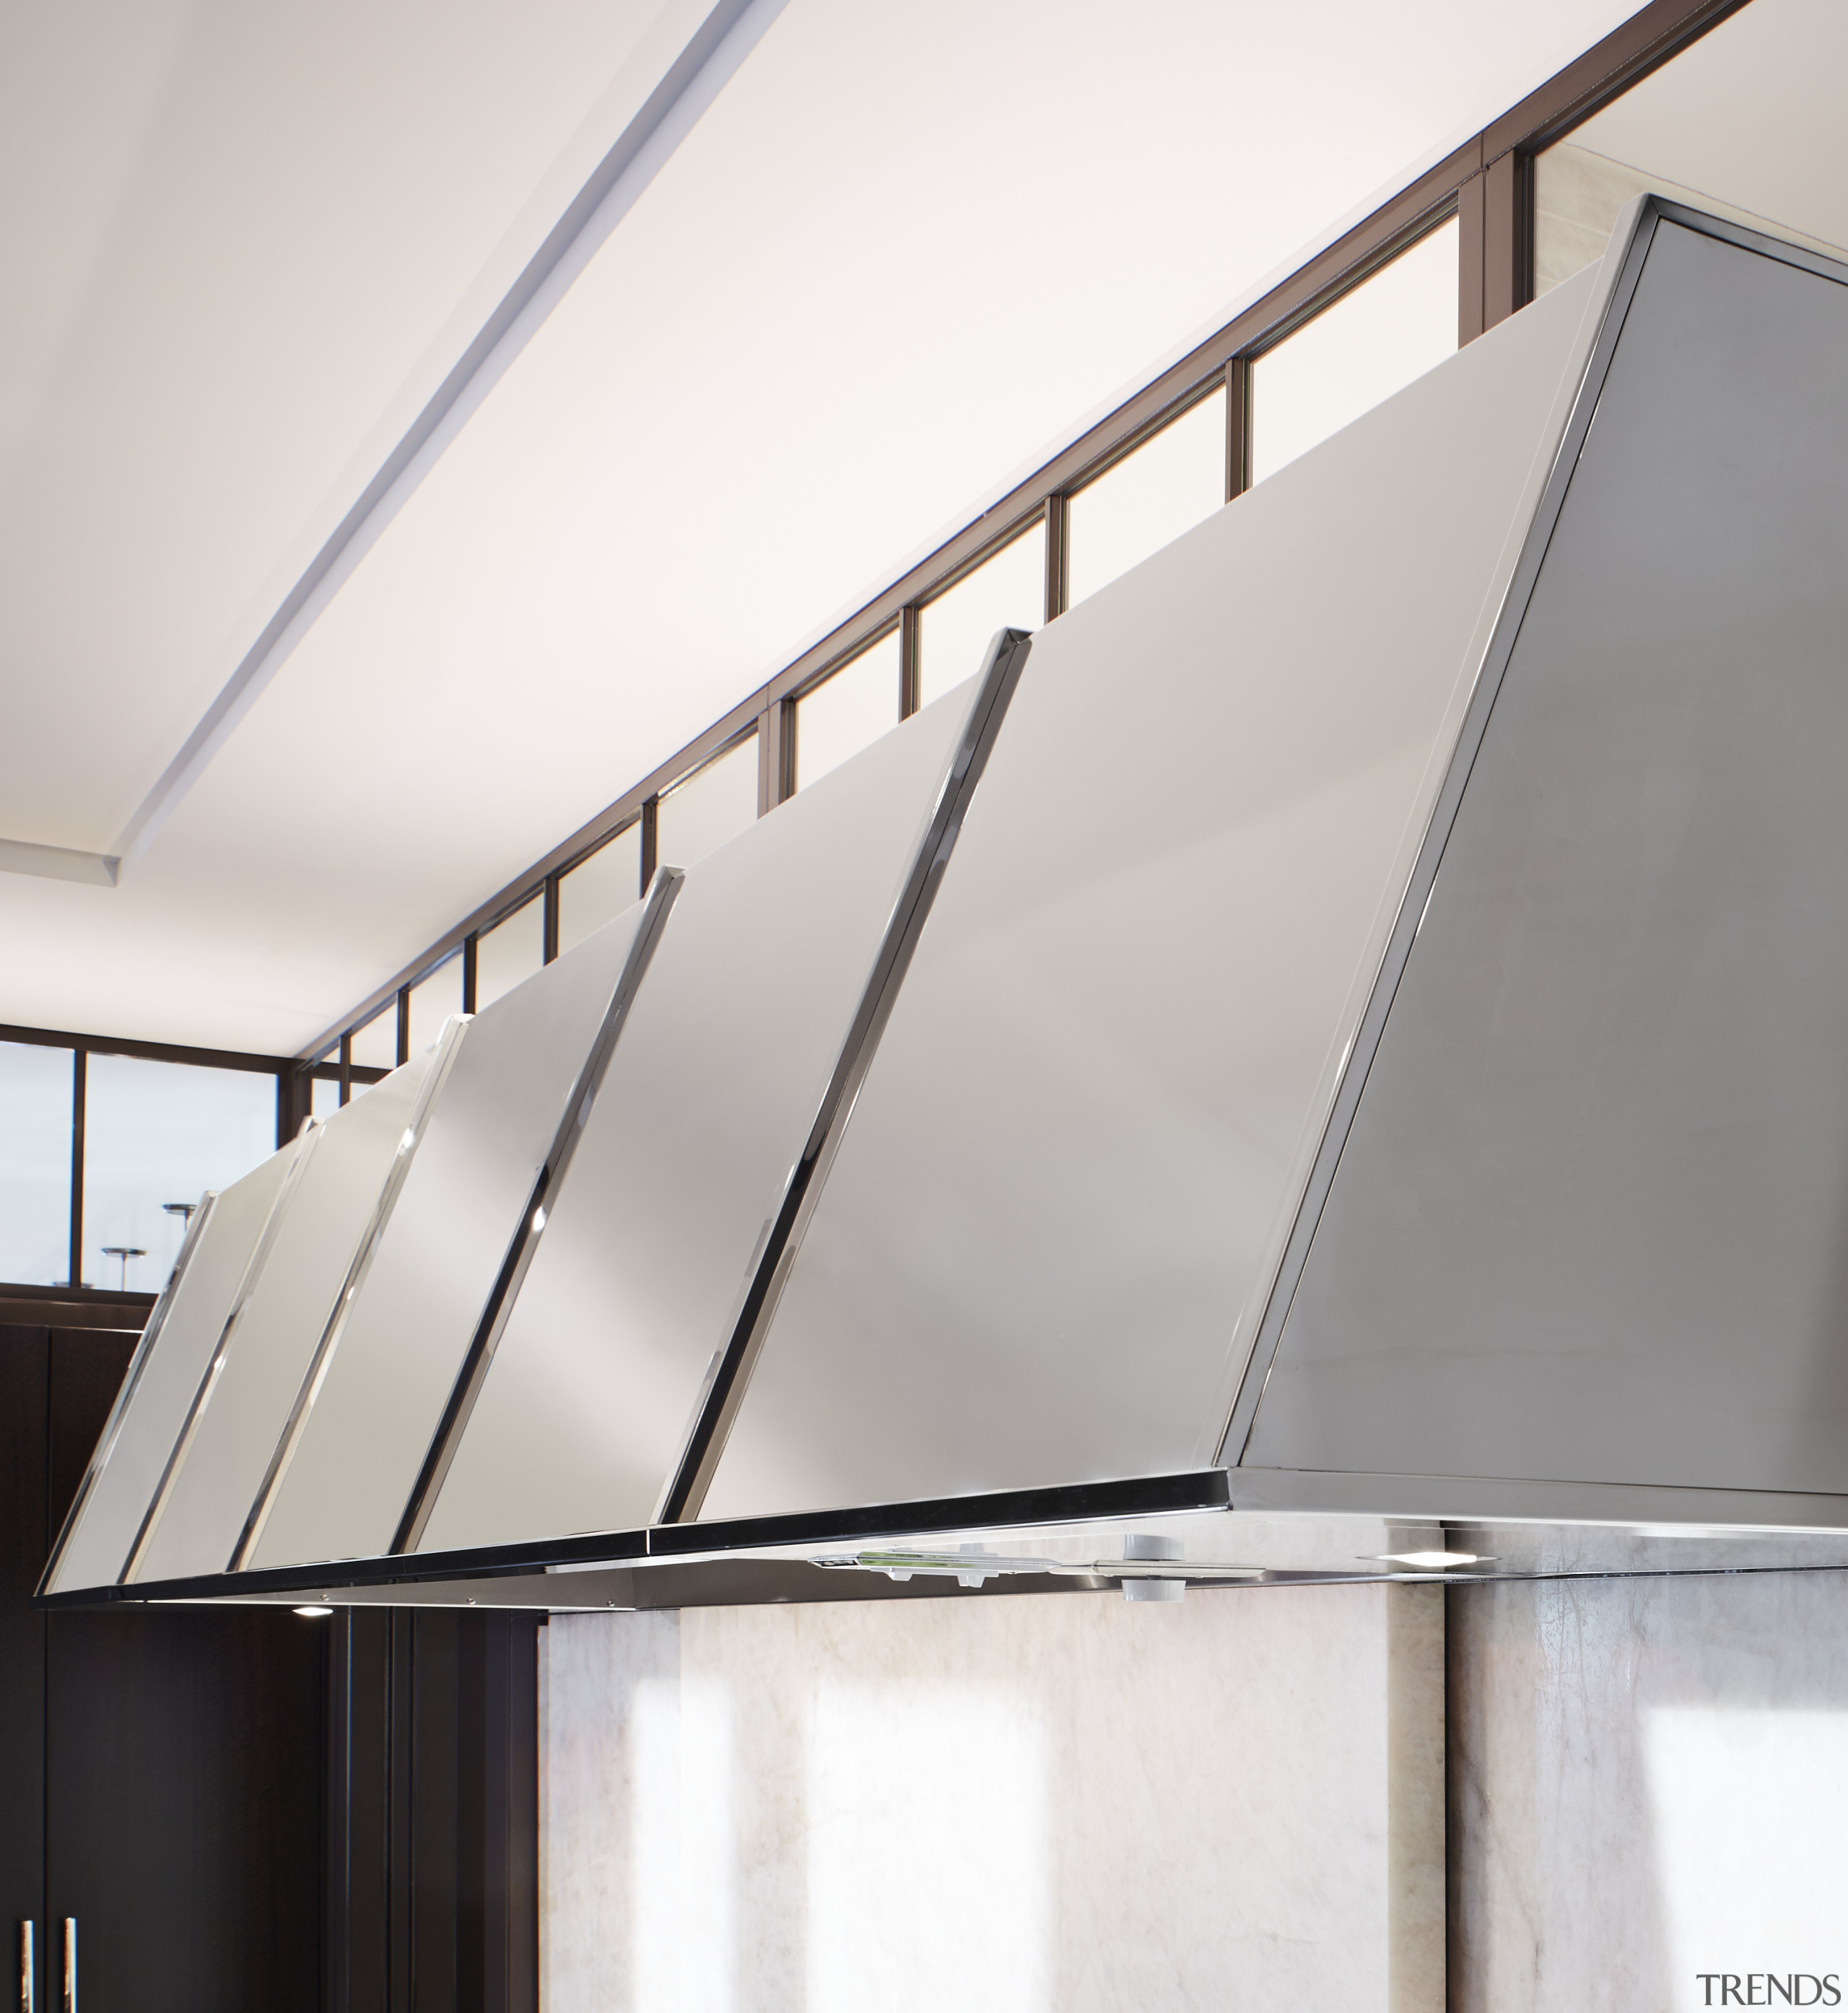 This polished stainless steel hood from the de architecture, daylighting, glass, handrail, line, product design, white